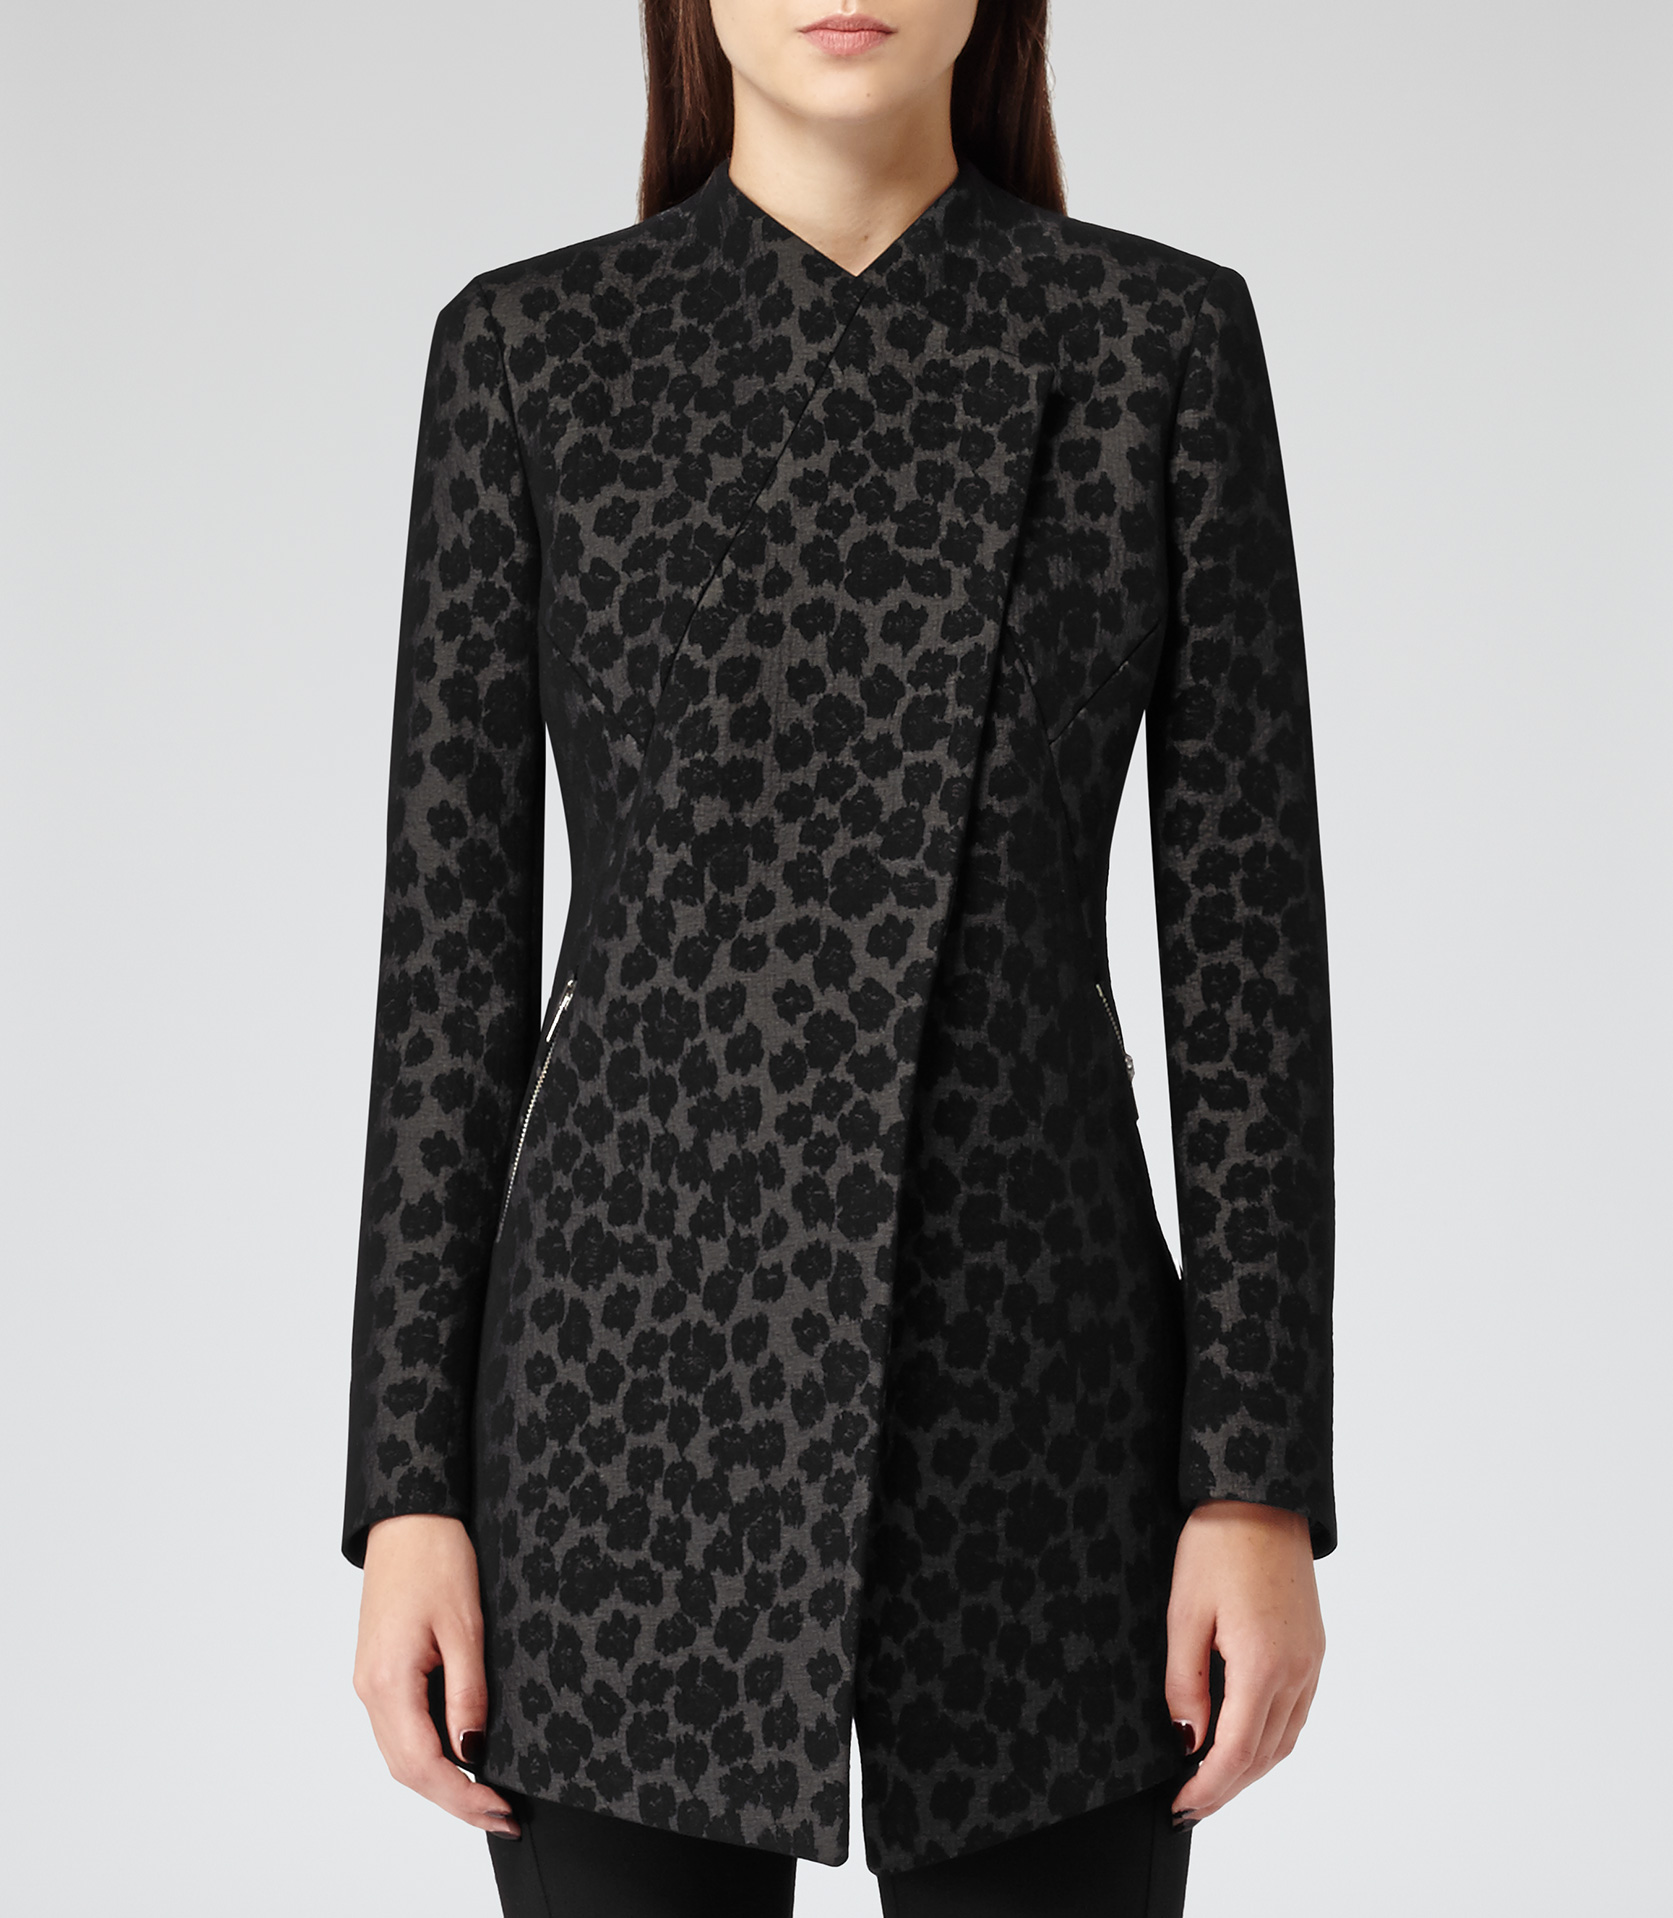 Cadie Leopardprint Tailored Leopard-print Coat - REISS